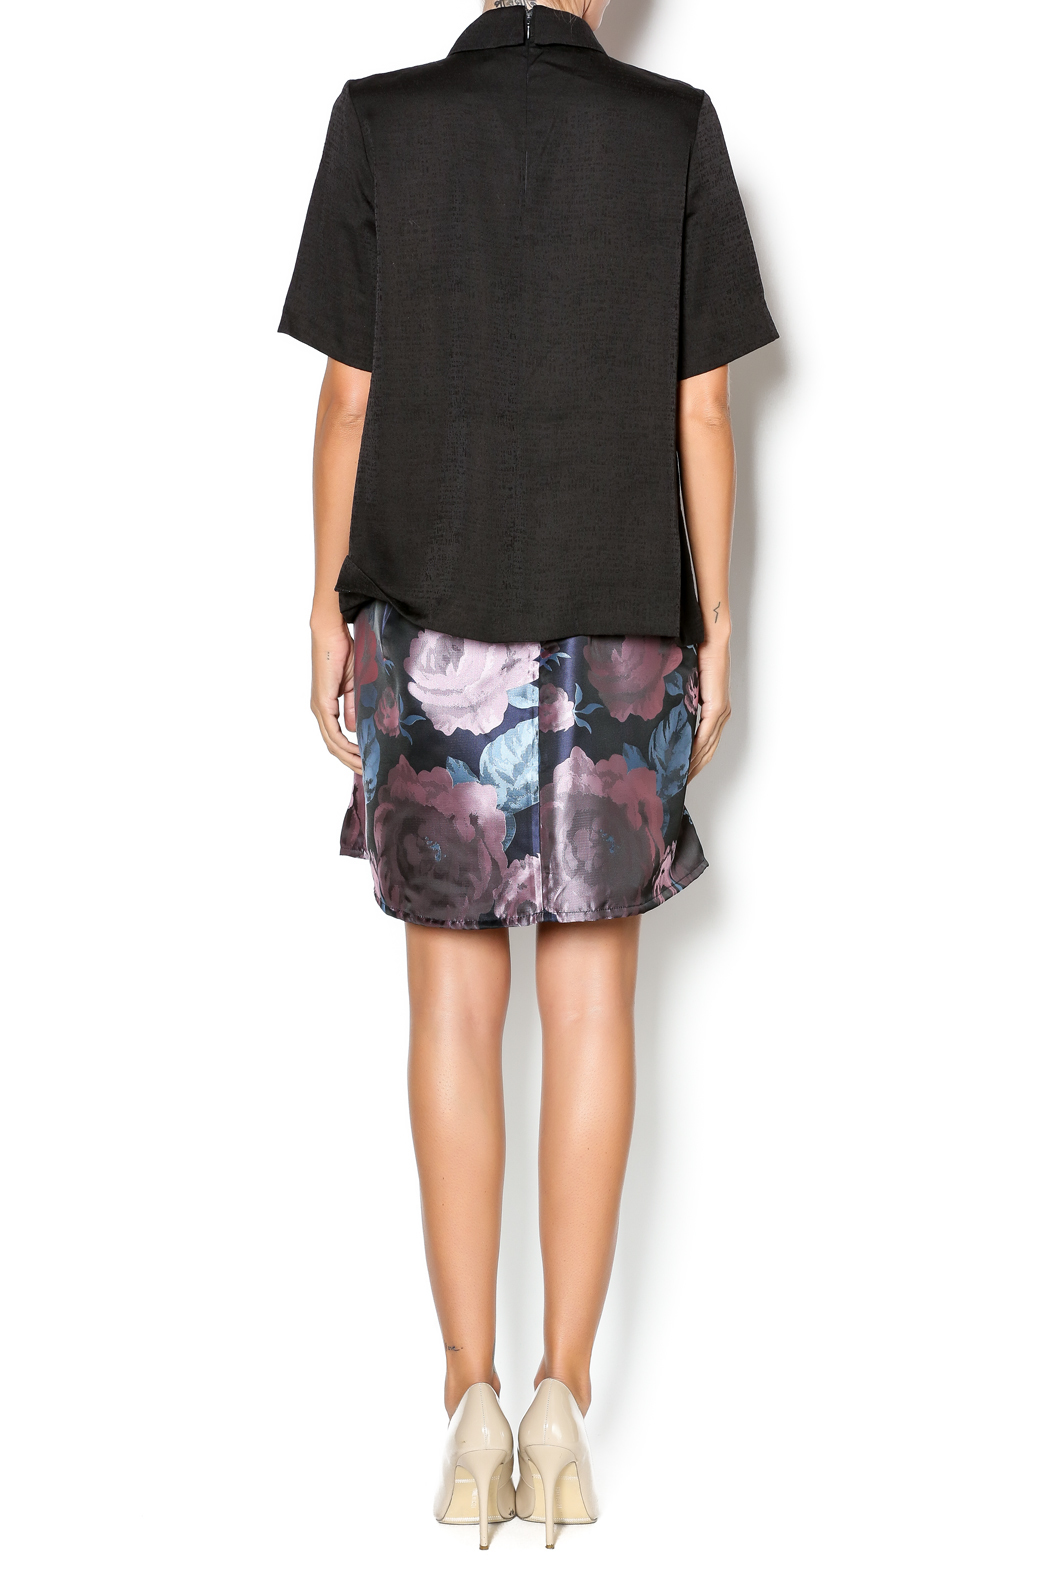 FRNCH Black Collared Top - Side Cropped Image